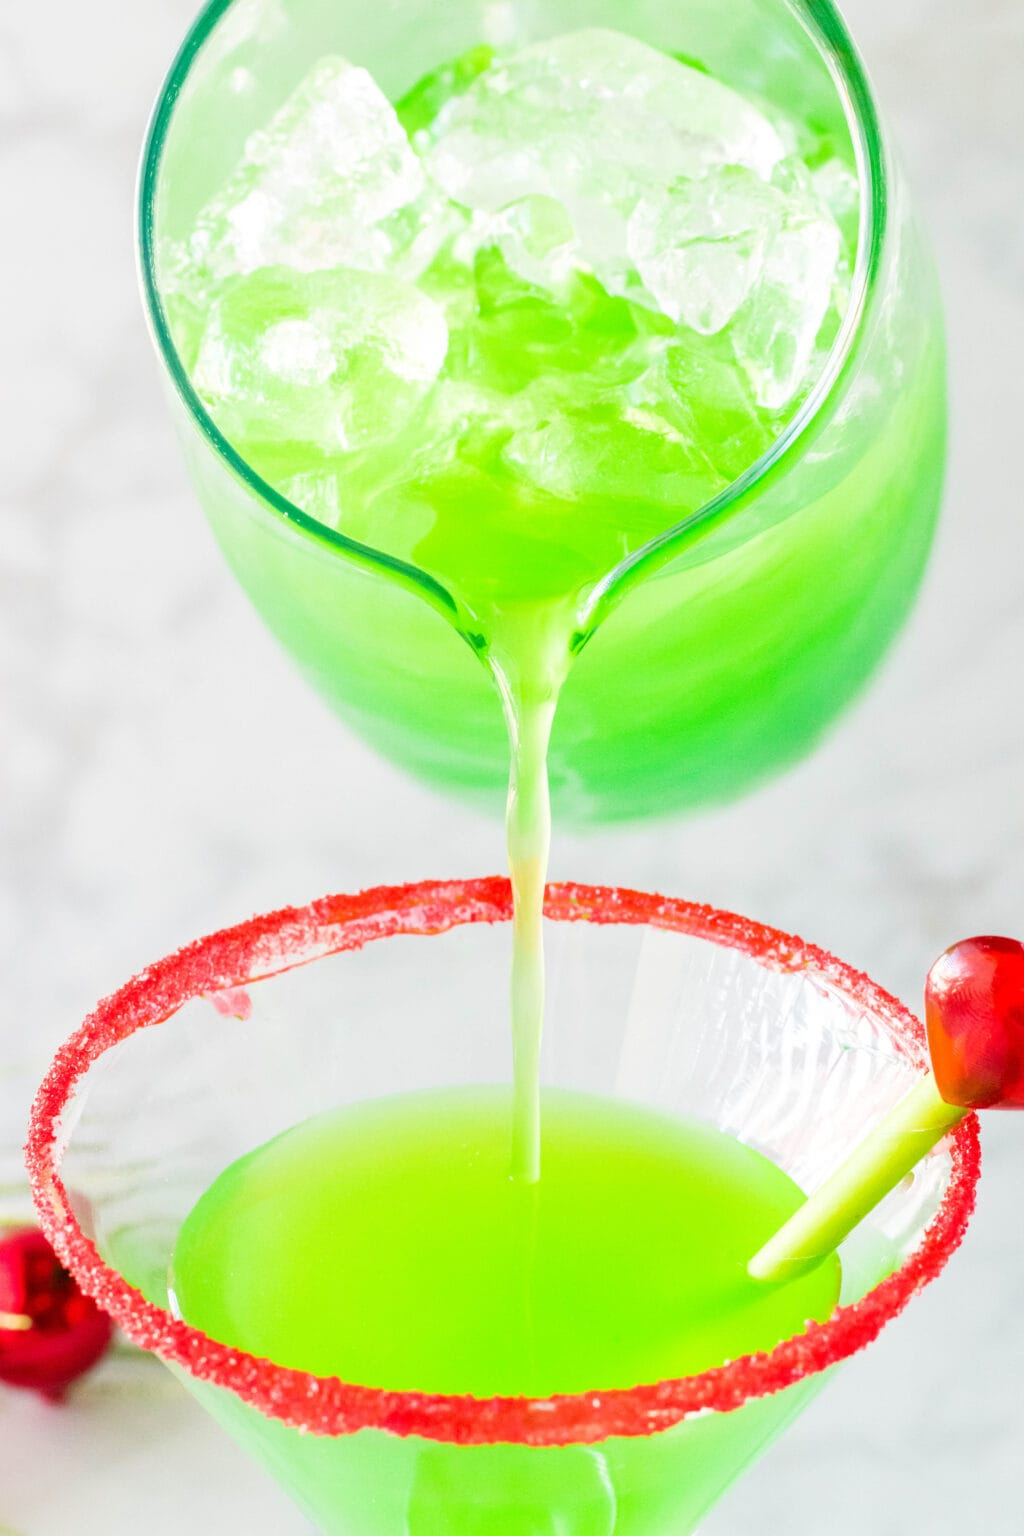 pouring grinch cocktail drink into glass